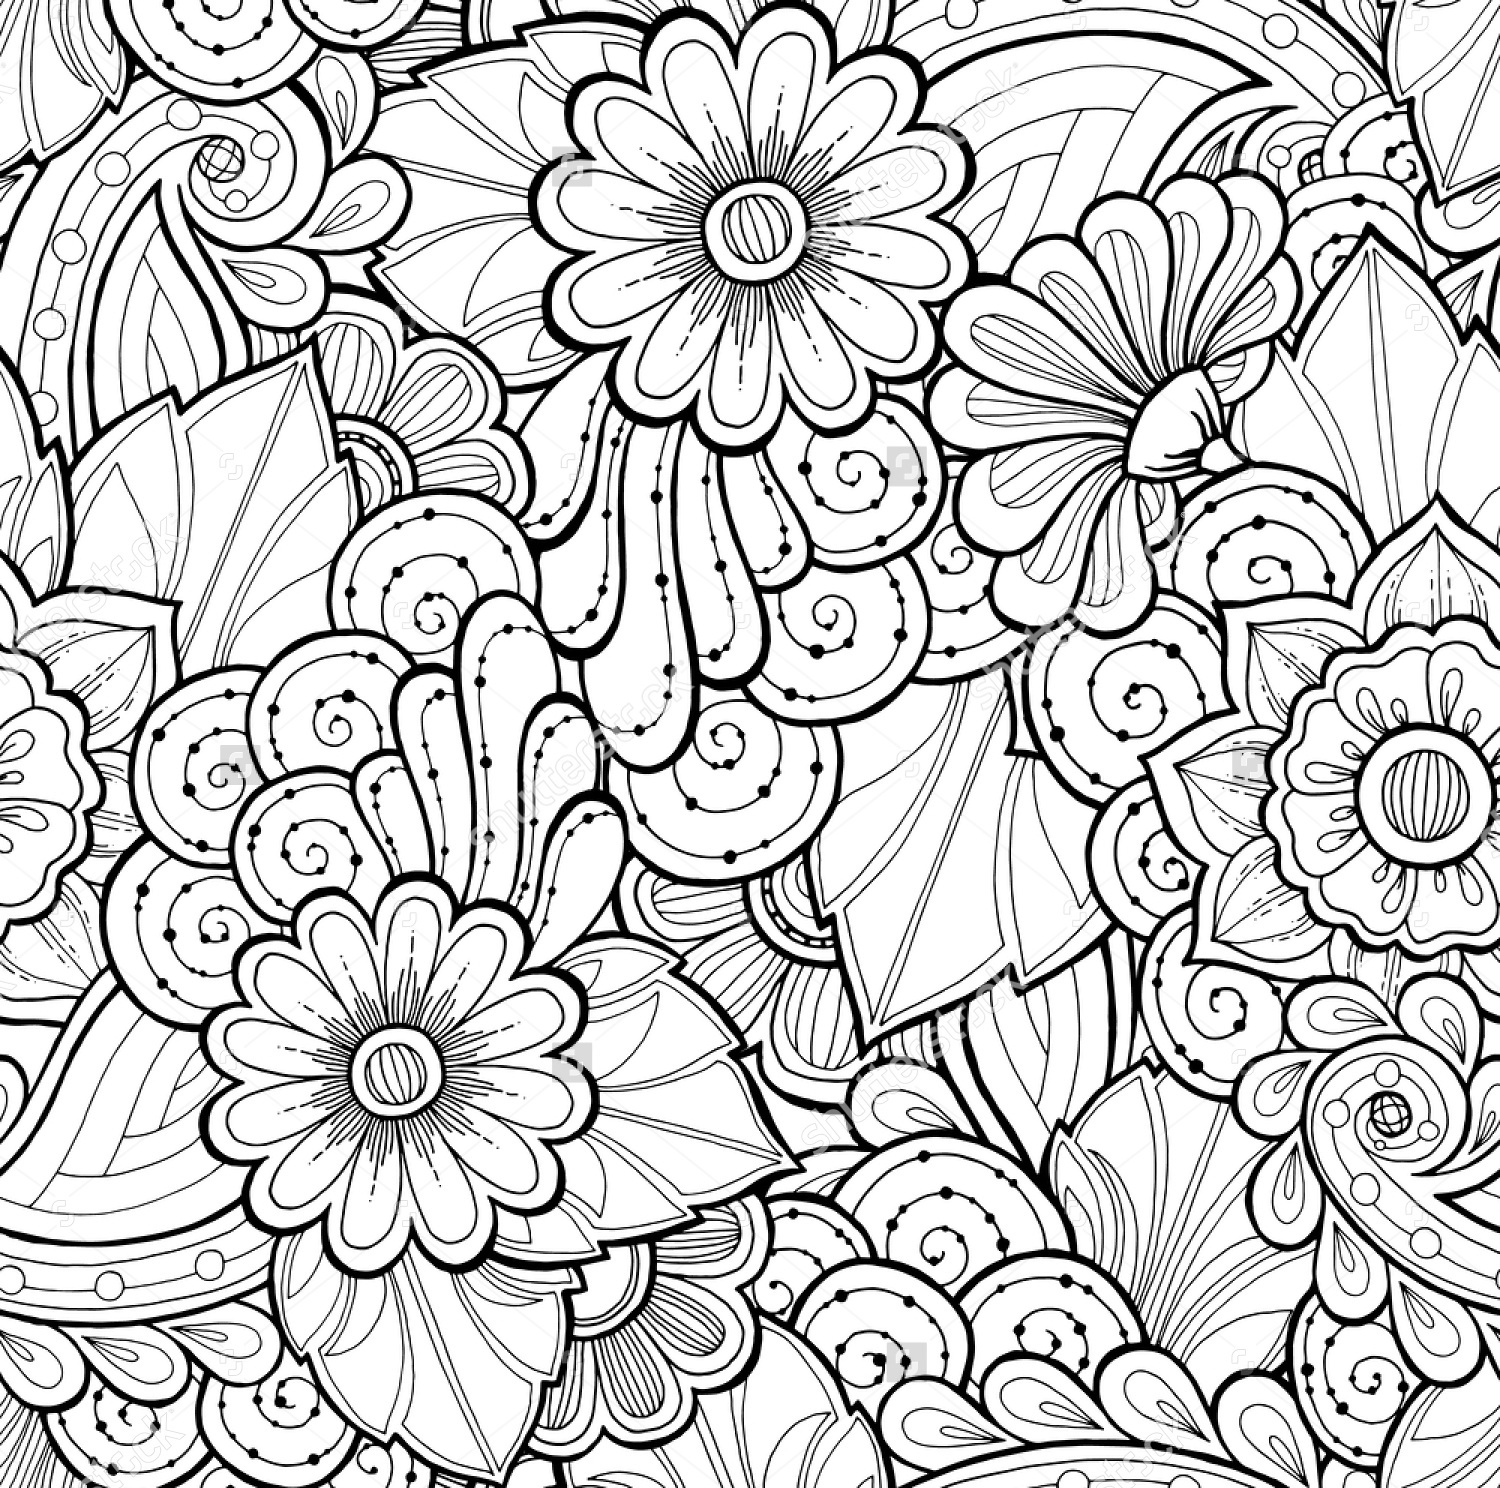 Black and White Paisley Vector